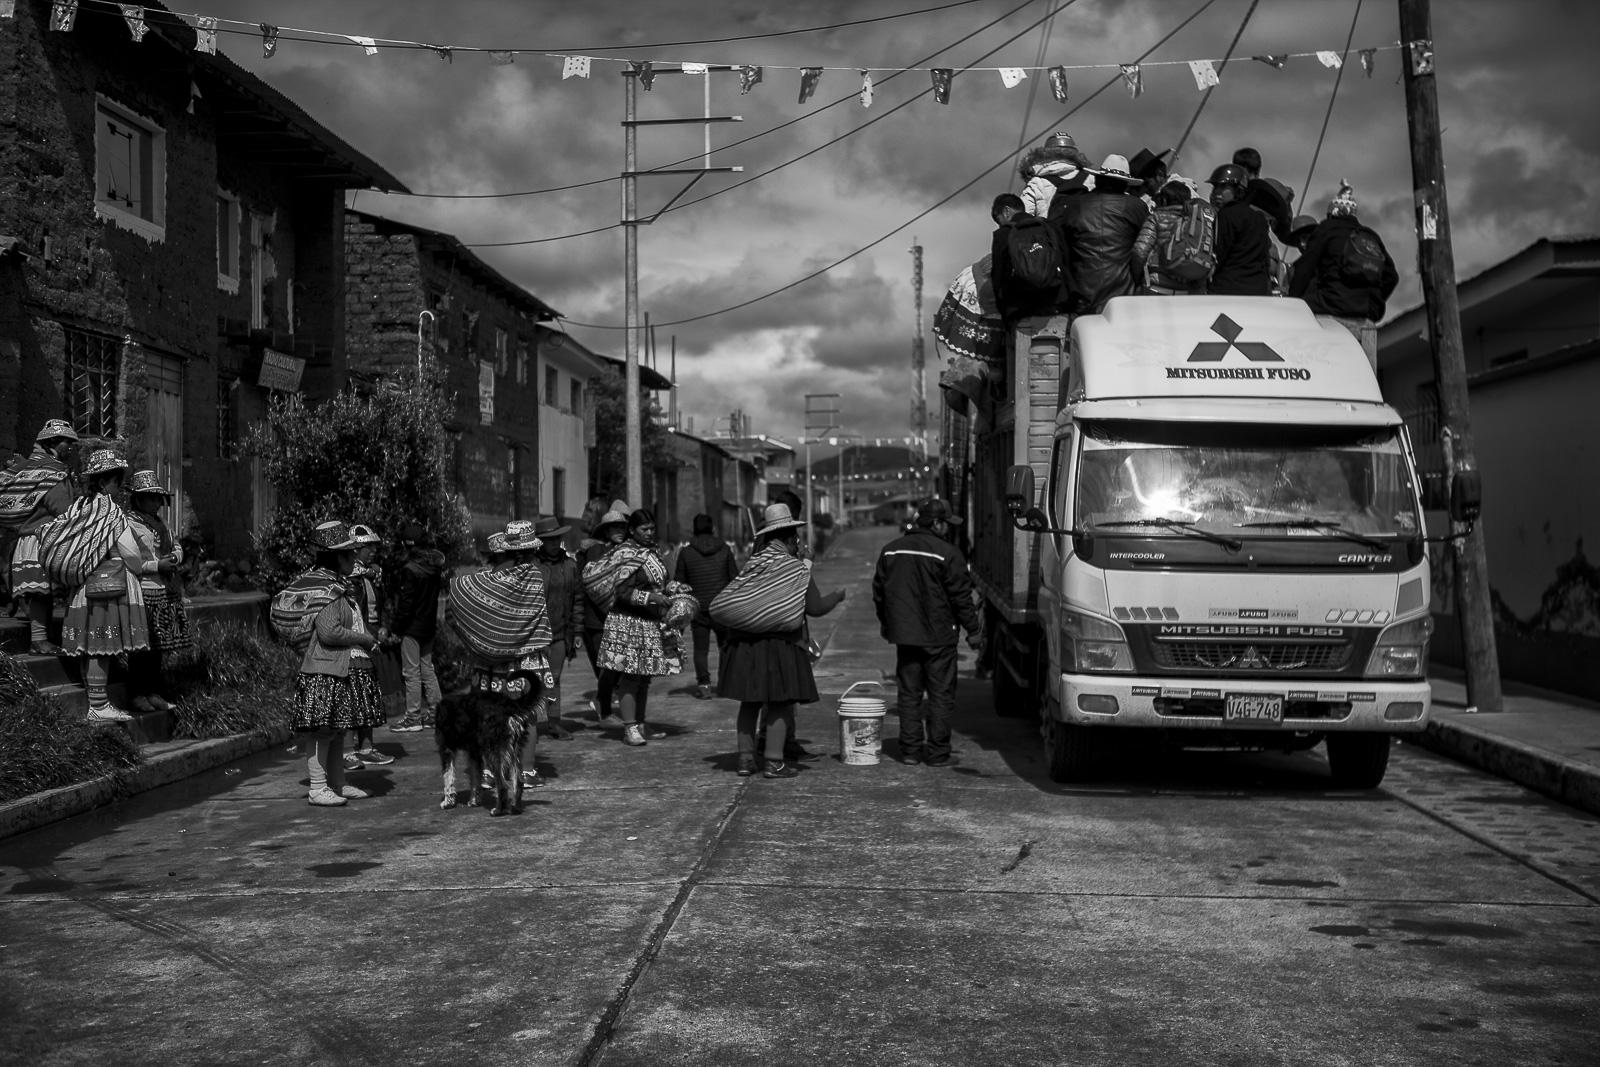 In Checca, people get ready for the ritual. They take big trucks to reach the Pampa of Chiriaje.